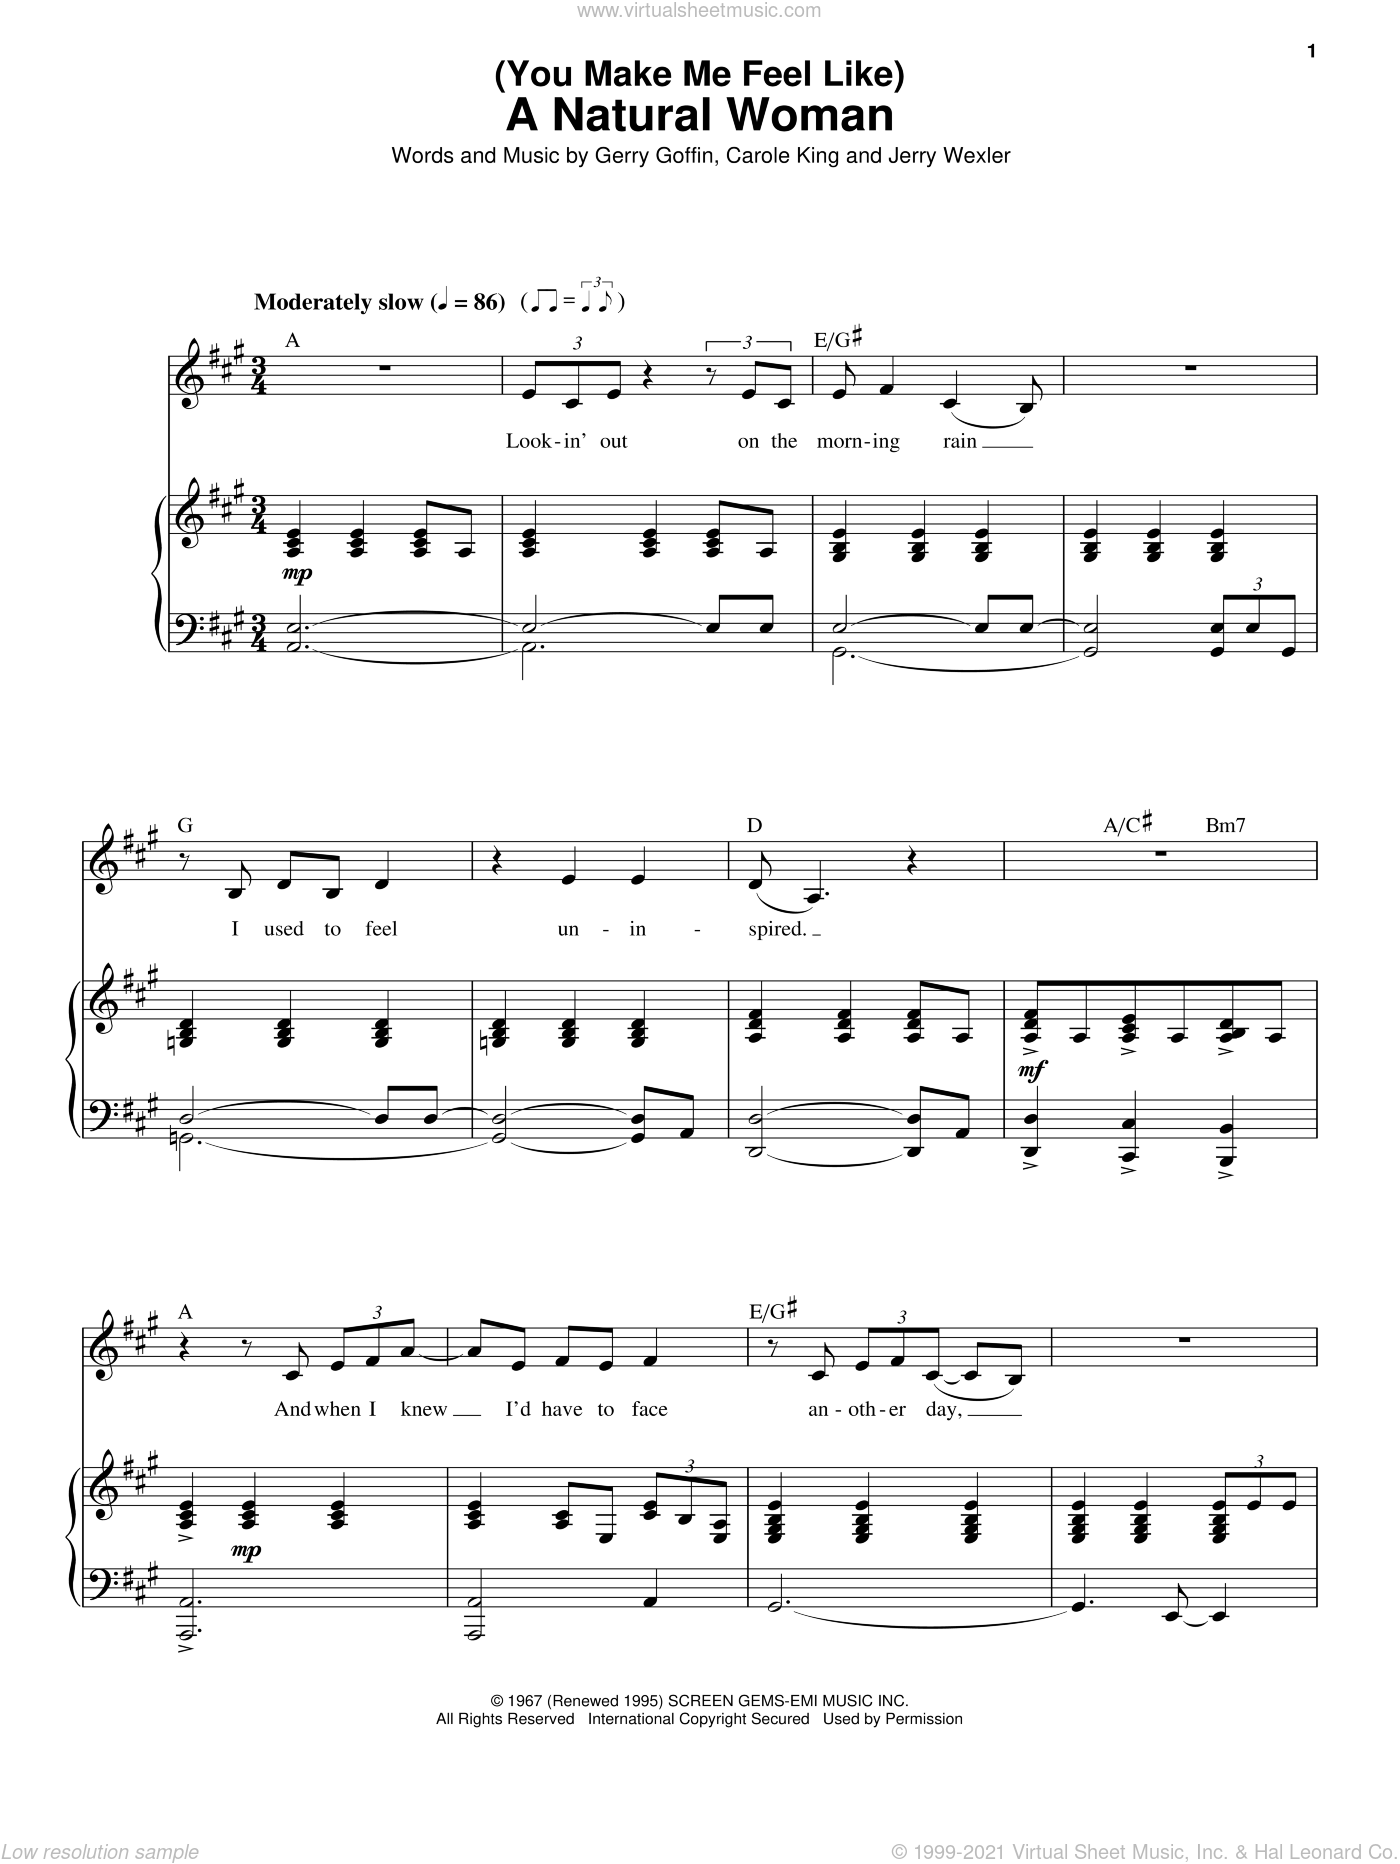 (You Make Me Feel Like) A Natural Woman sheet music for voice and piano by Jerry Wexler